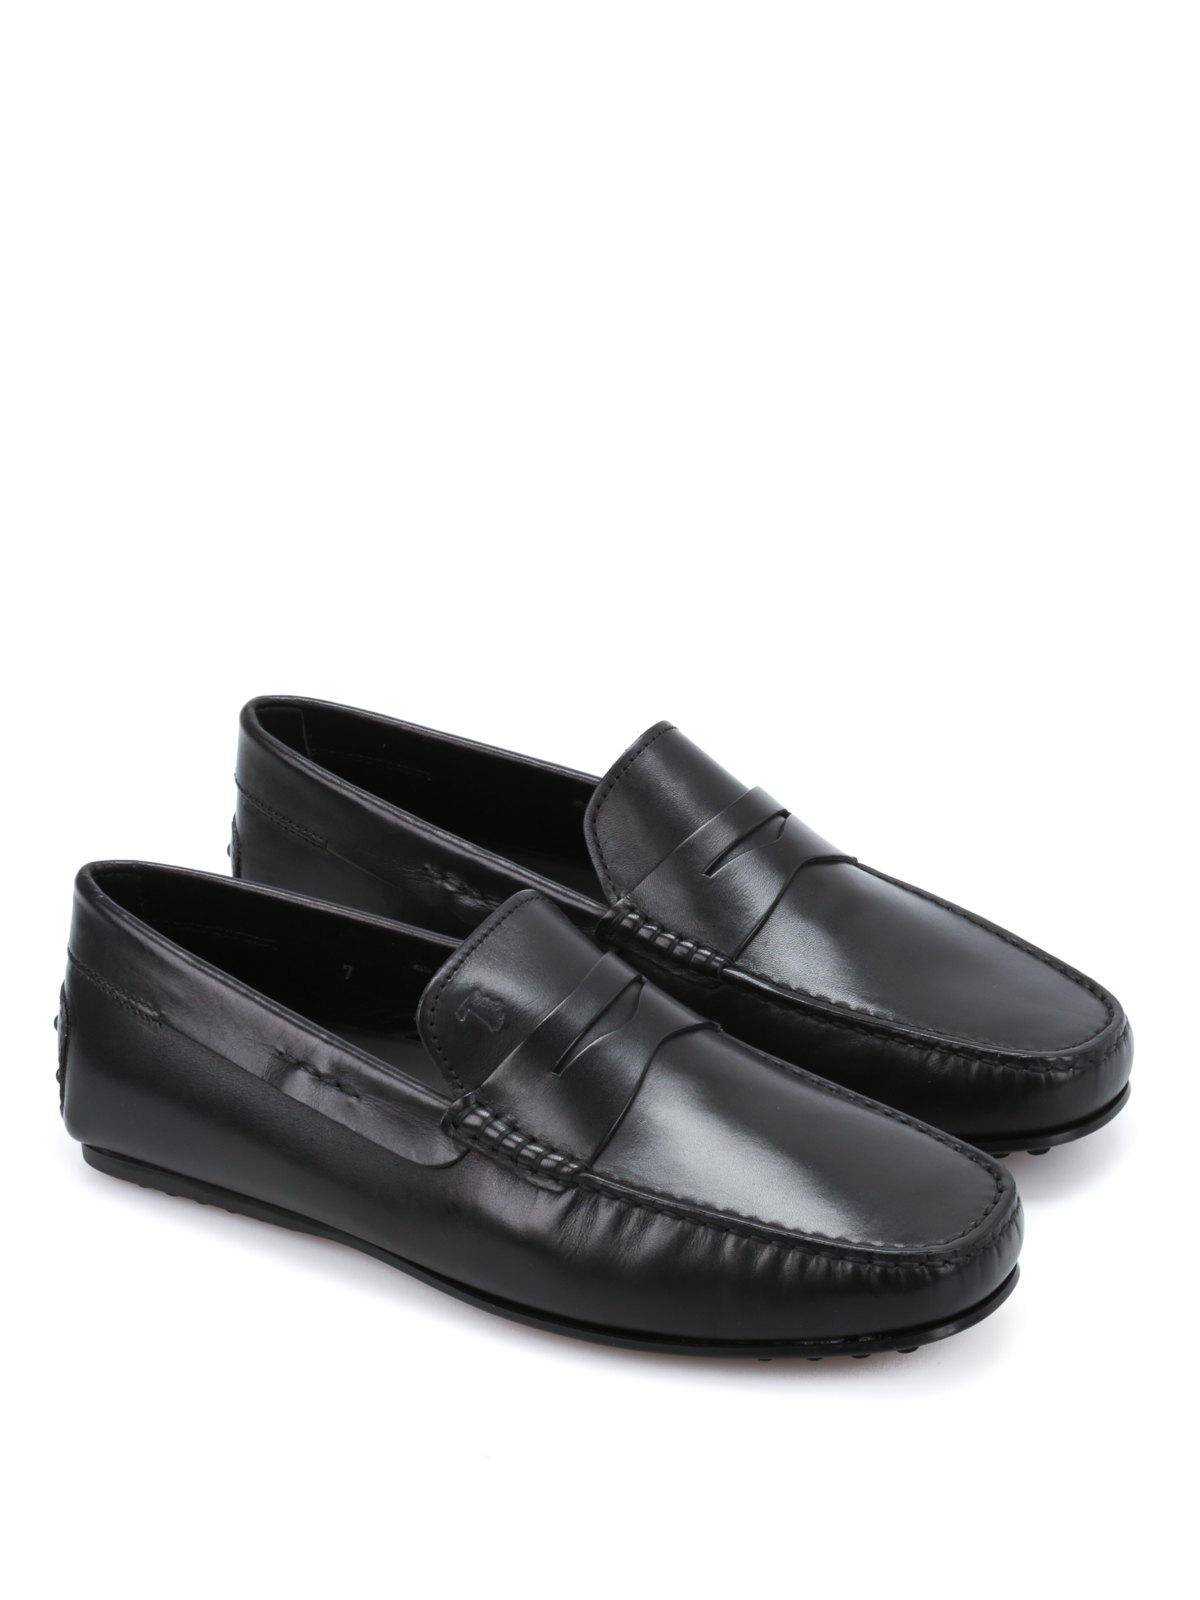 Gommino City loafers - Brown Tod's qVs0z